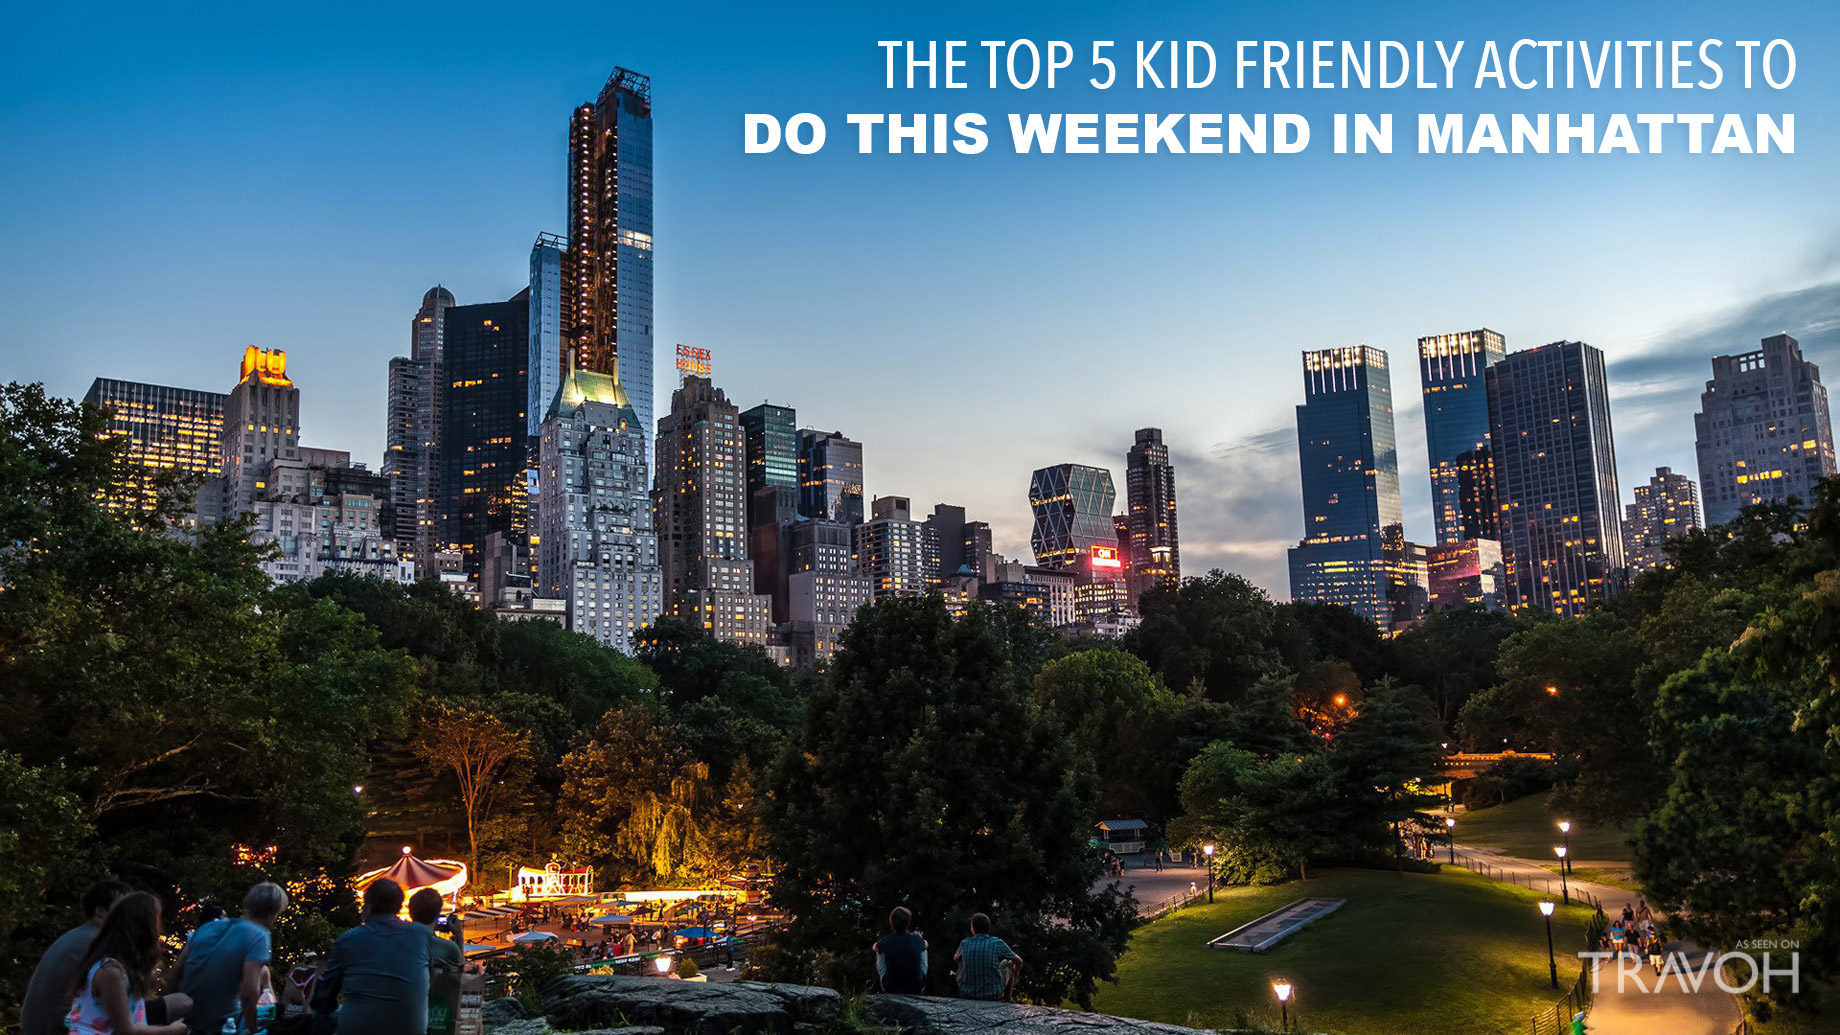 The Top 5 Kid-Friendly Activities to Do This Weekend in Manhattan